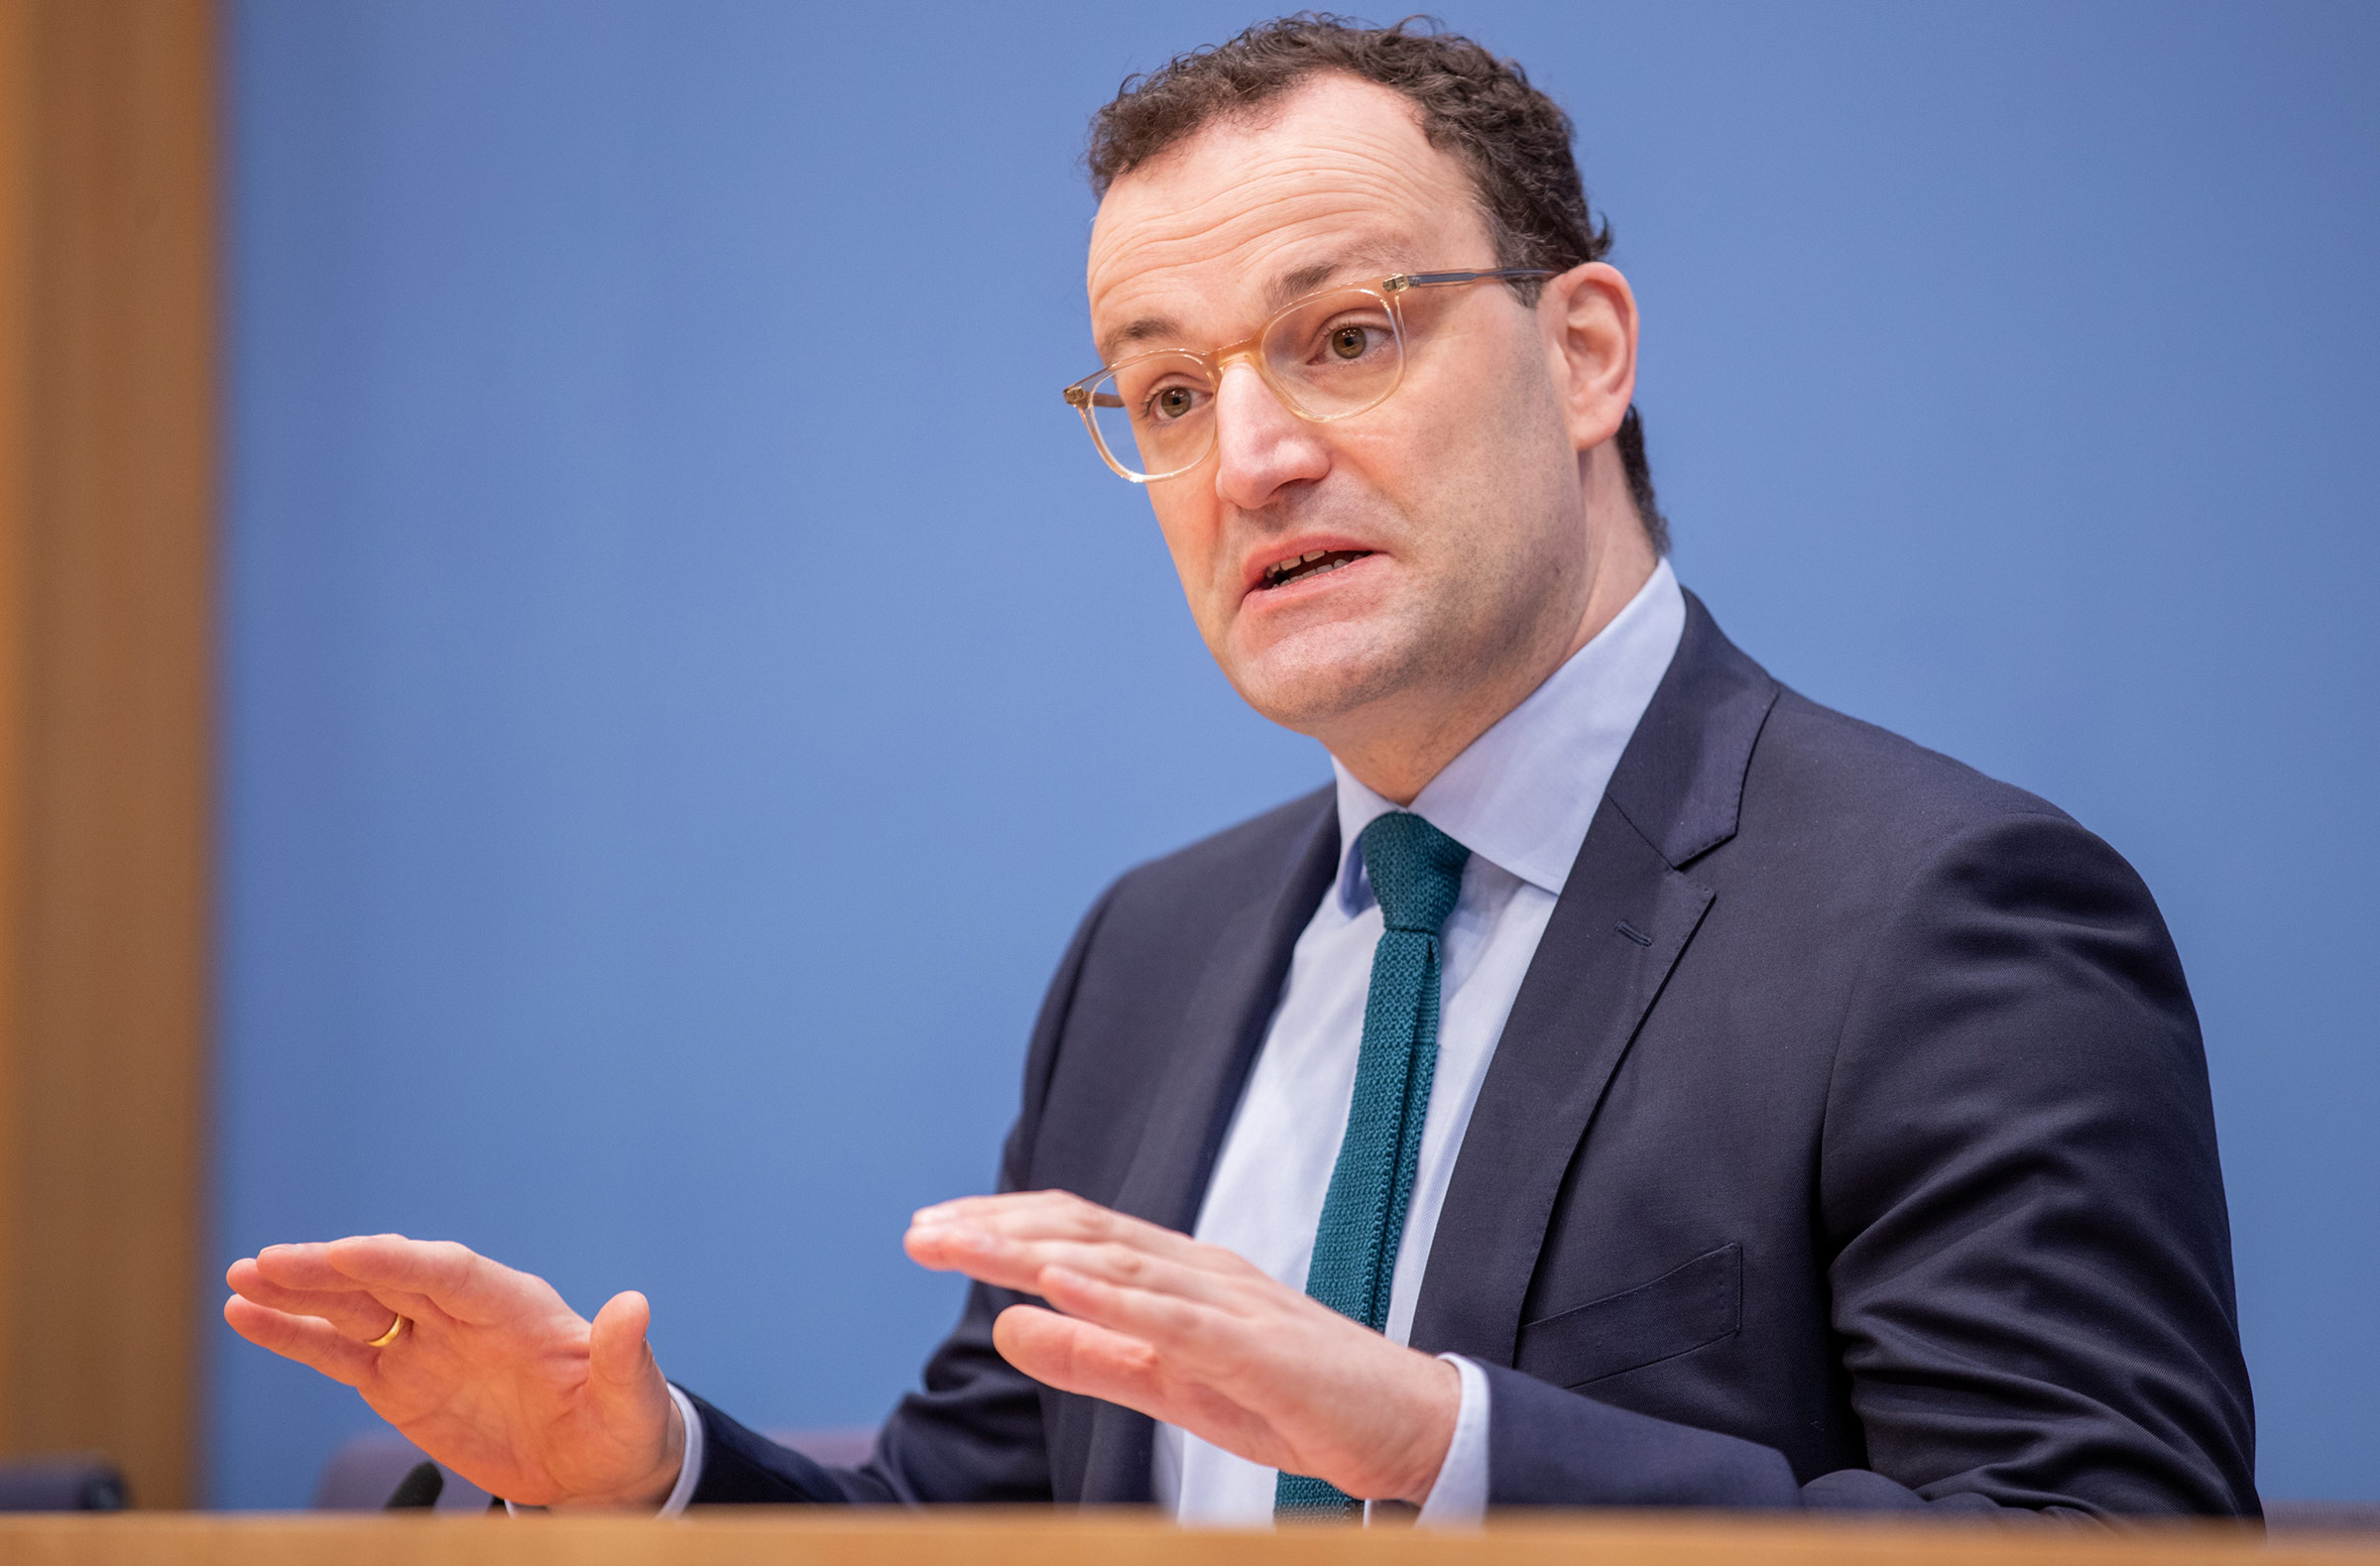 German Health Minister Jens Spahn speaks during a press conference on January 22, in Berlin, Germany.